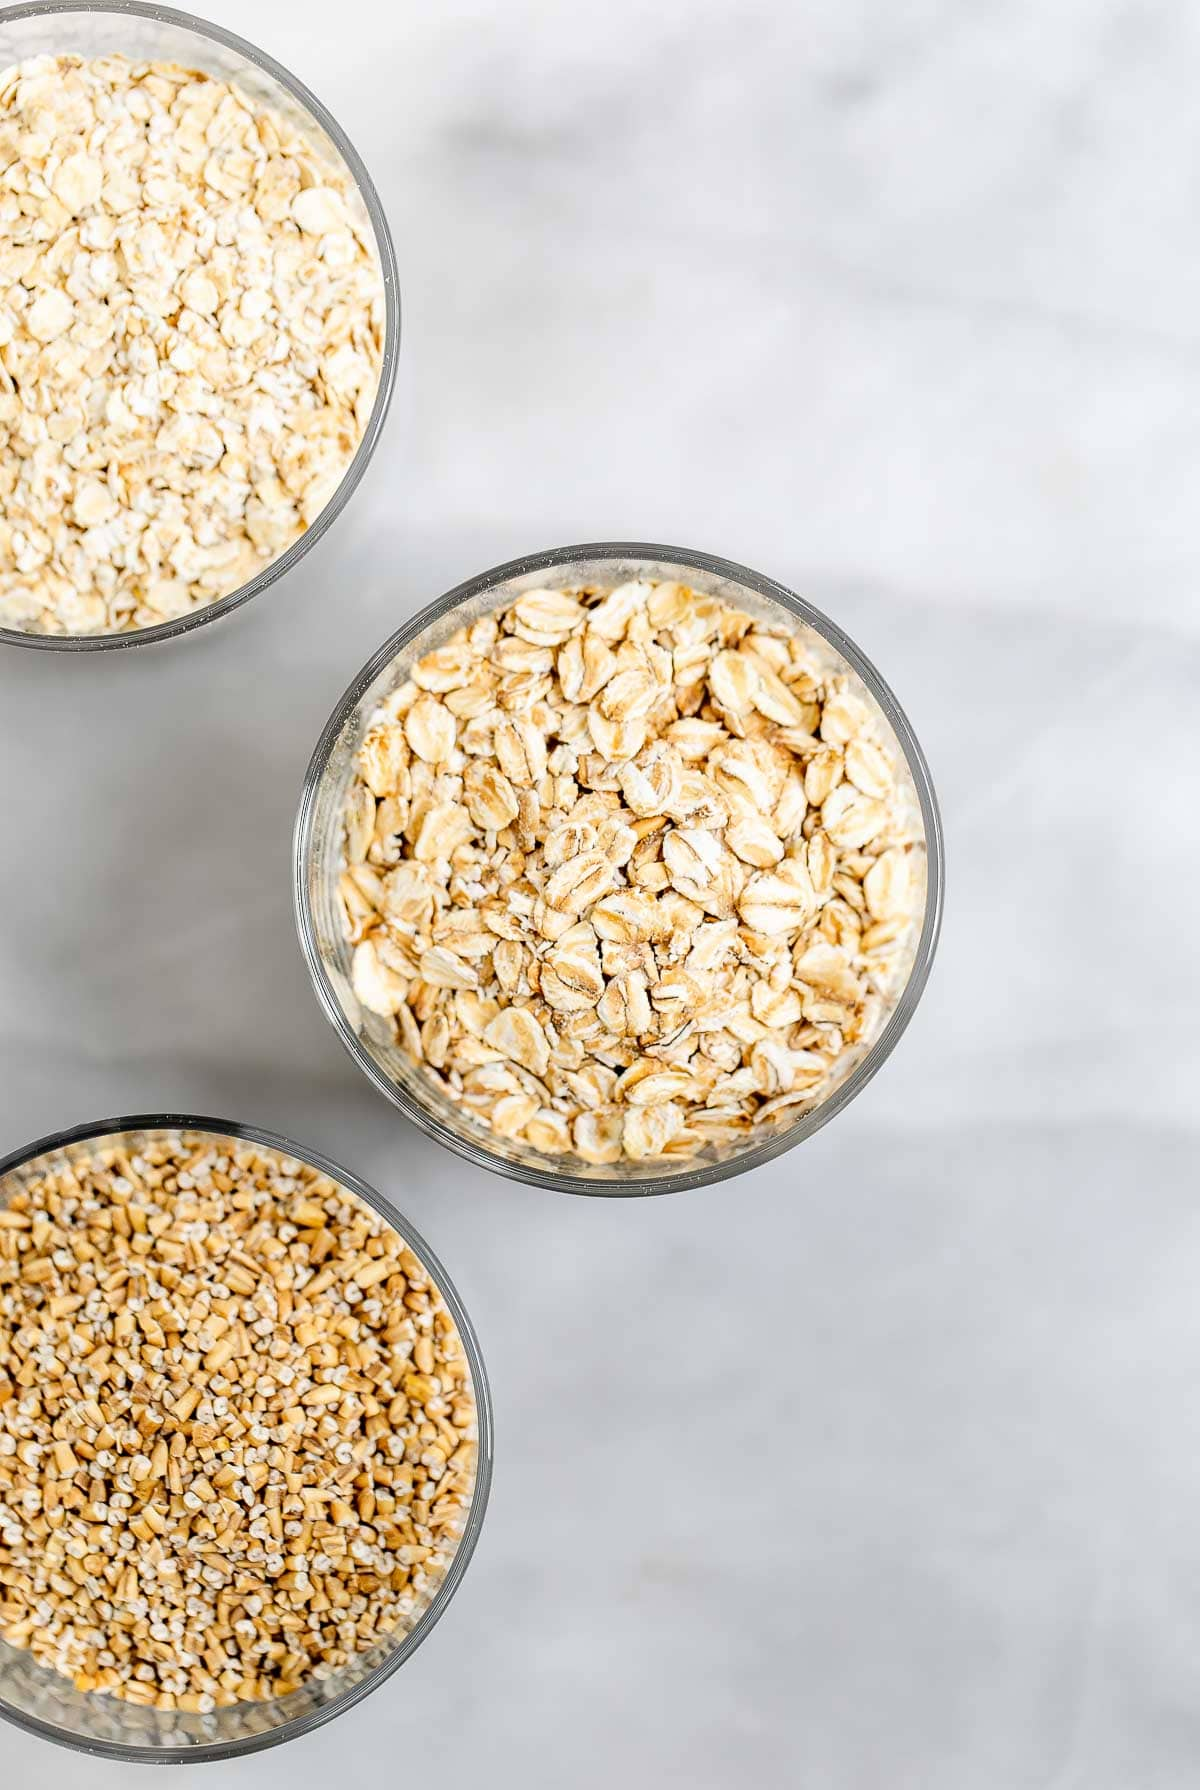 Three jars with different types of oats.